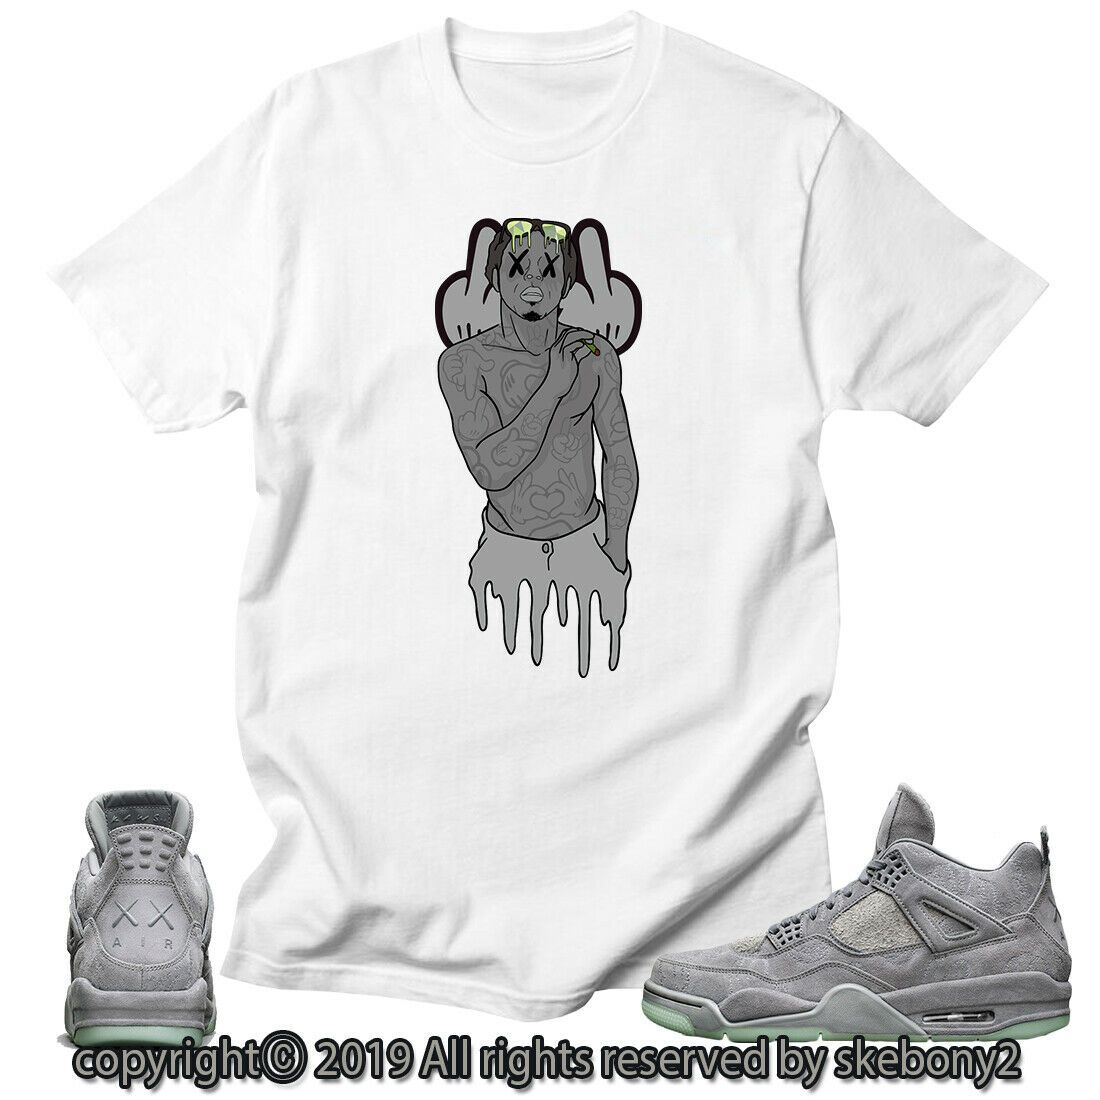 991dab272be1 Details about CUSTOM T SHIRT MATCHING STYLE OF Air Jordan 4 KAWS x ...